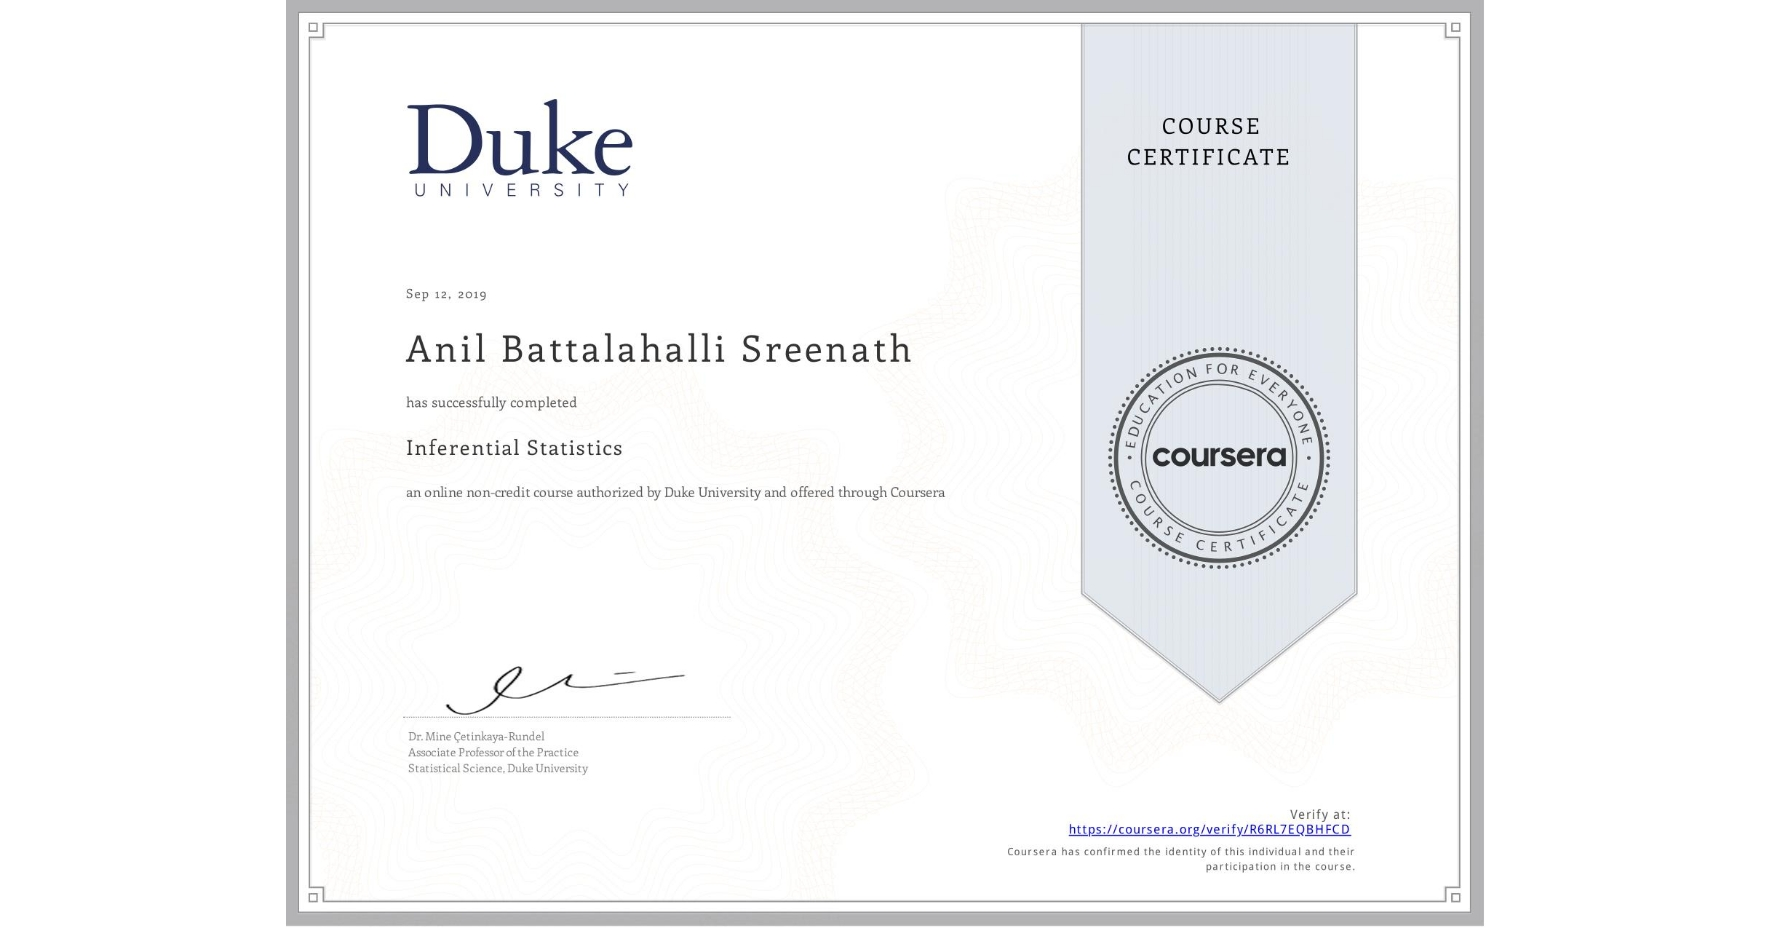 View certificate for Anil Battalahalli Sreenath, Inferential Statistics, an online non-credit course authorized by Duke University and offered through Coursera